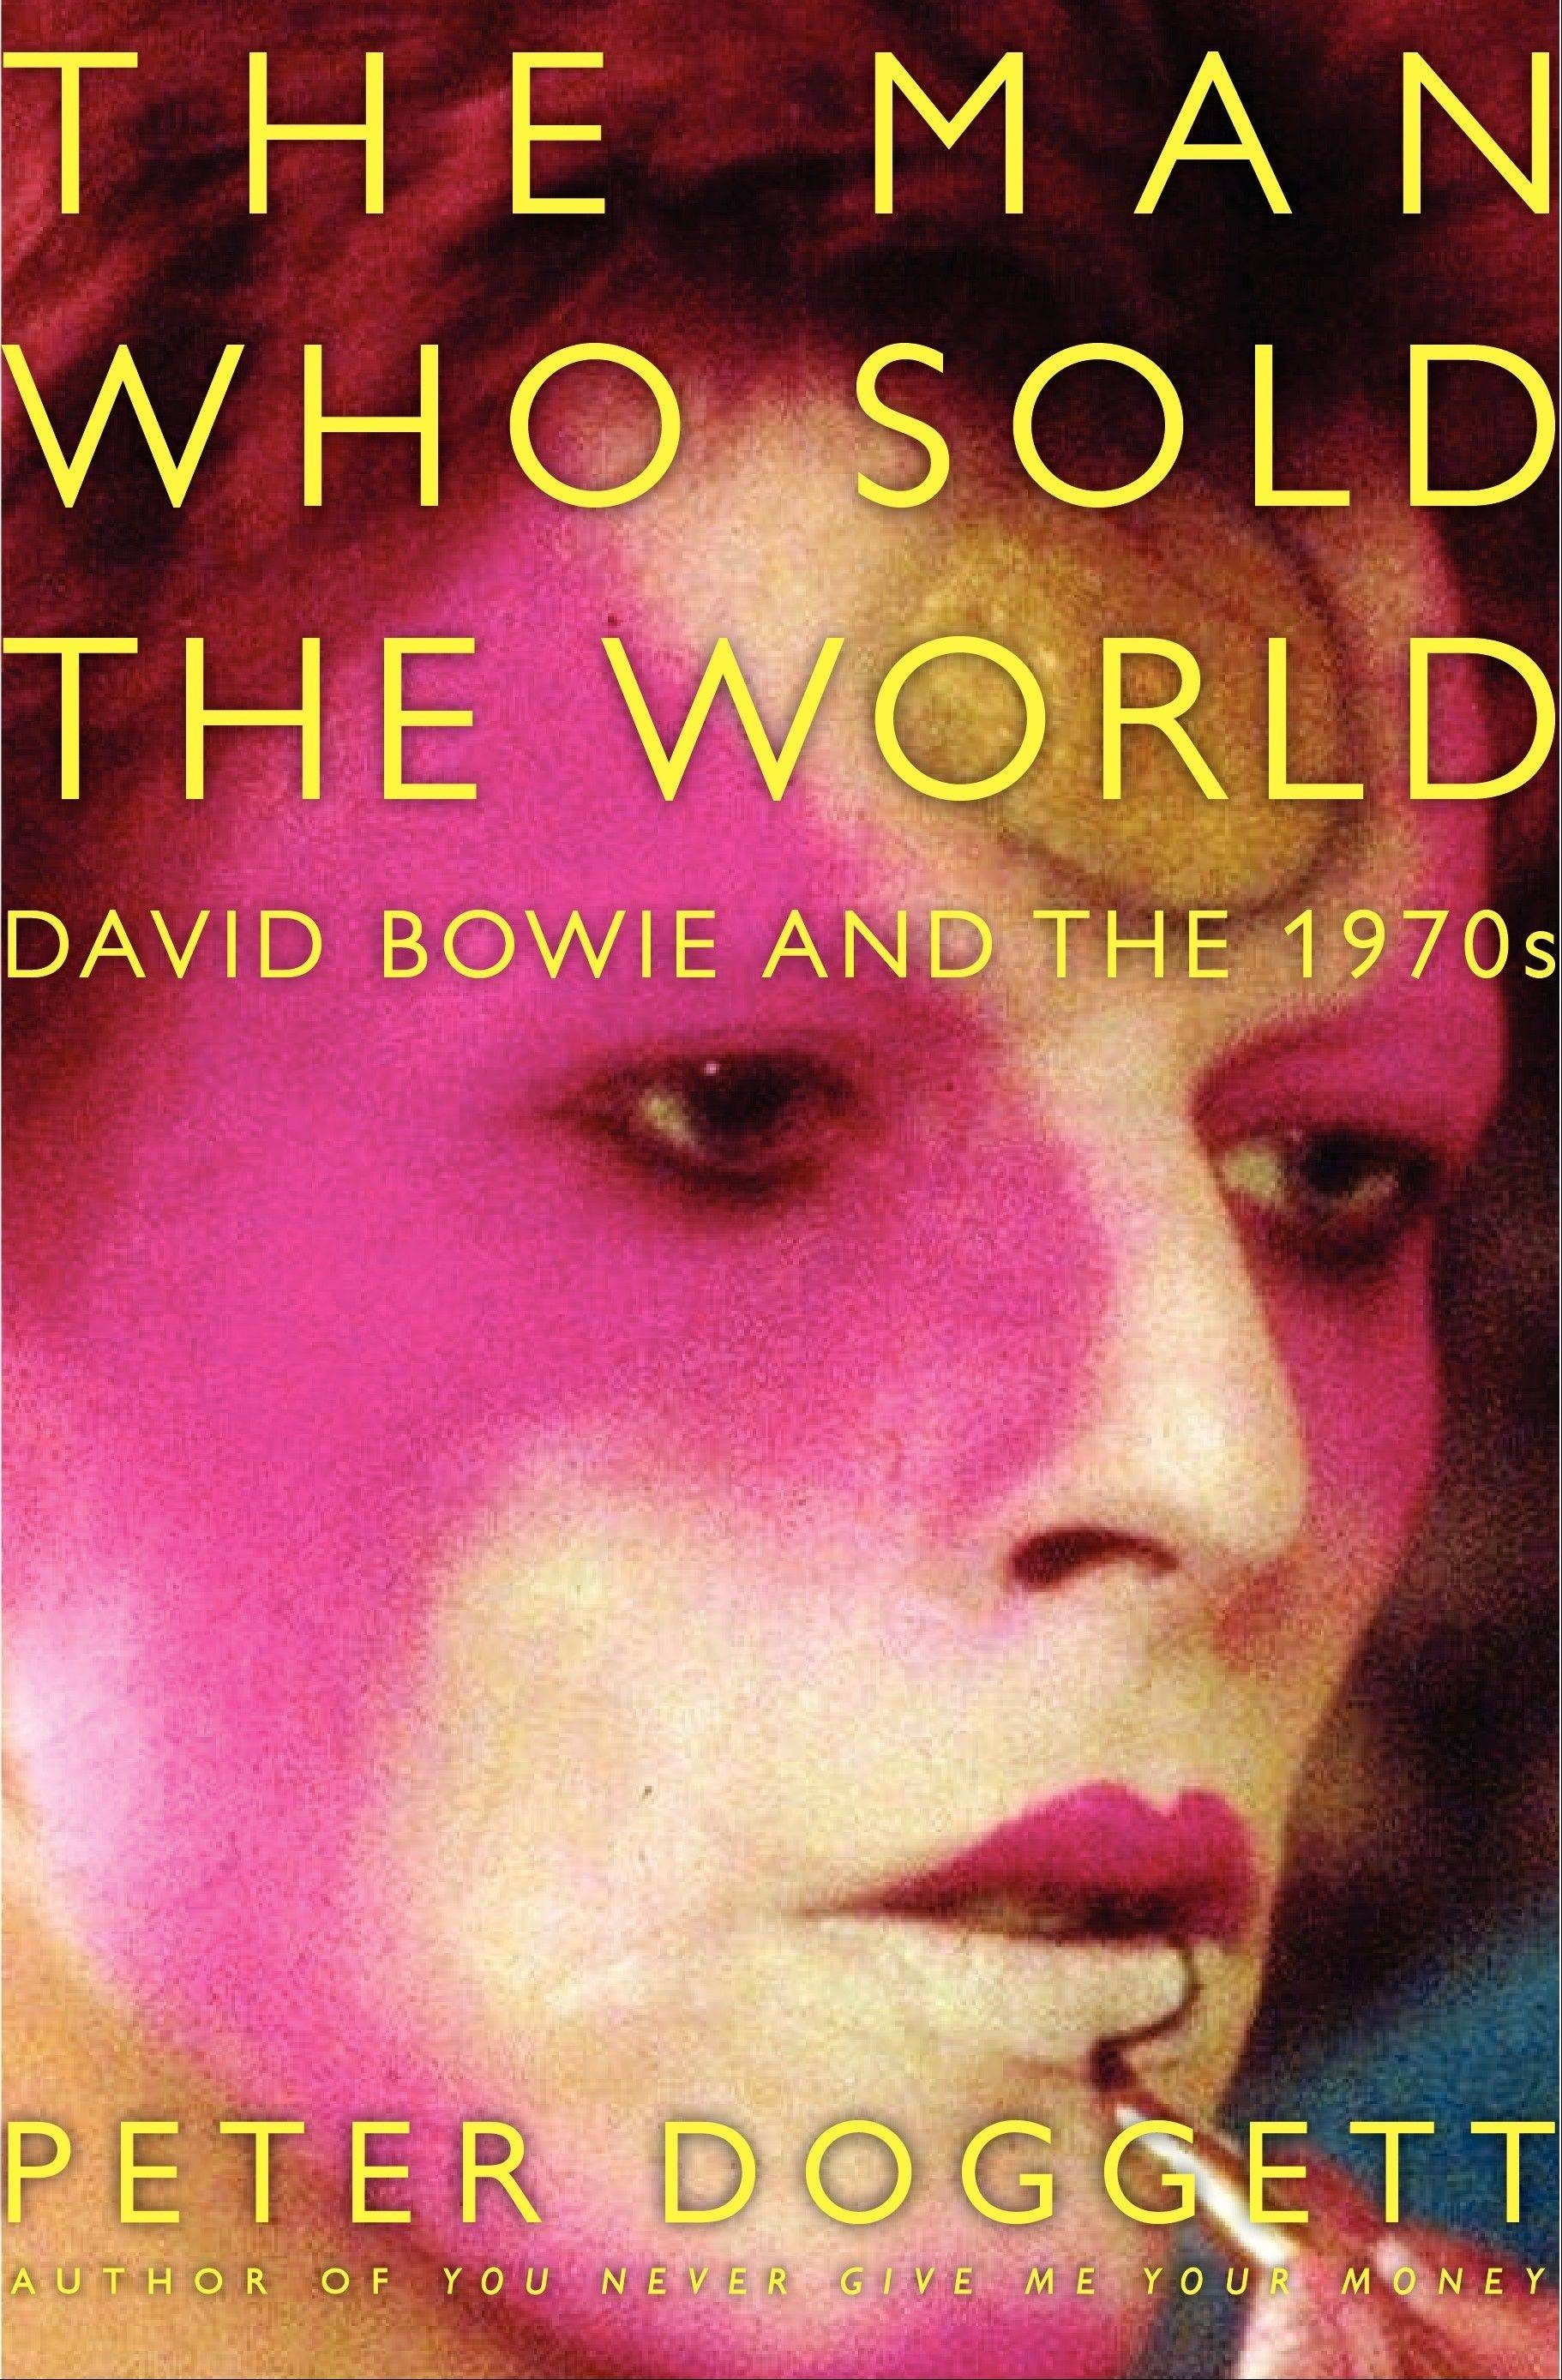 """The Man Who Sold the World: David Bowie and the 1970s"" by Peter Doggett"